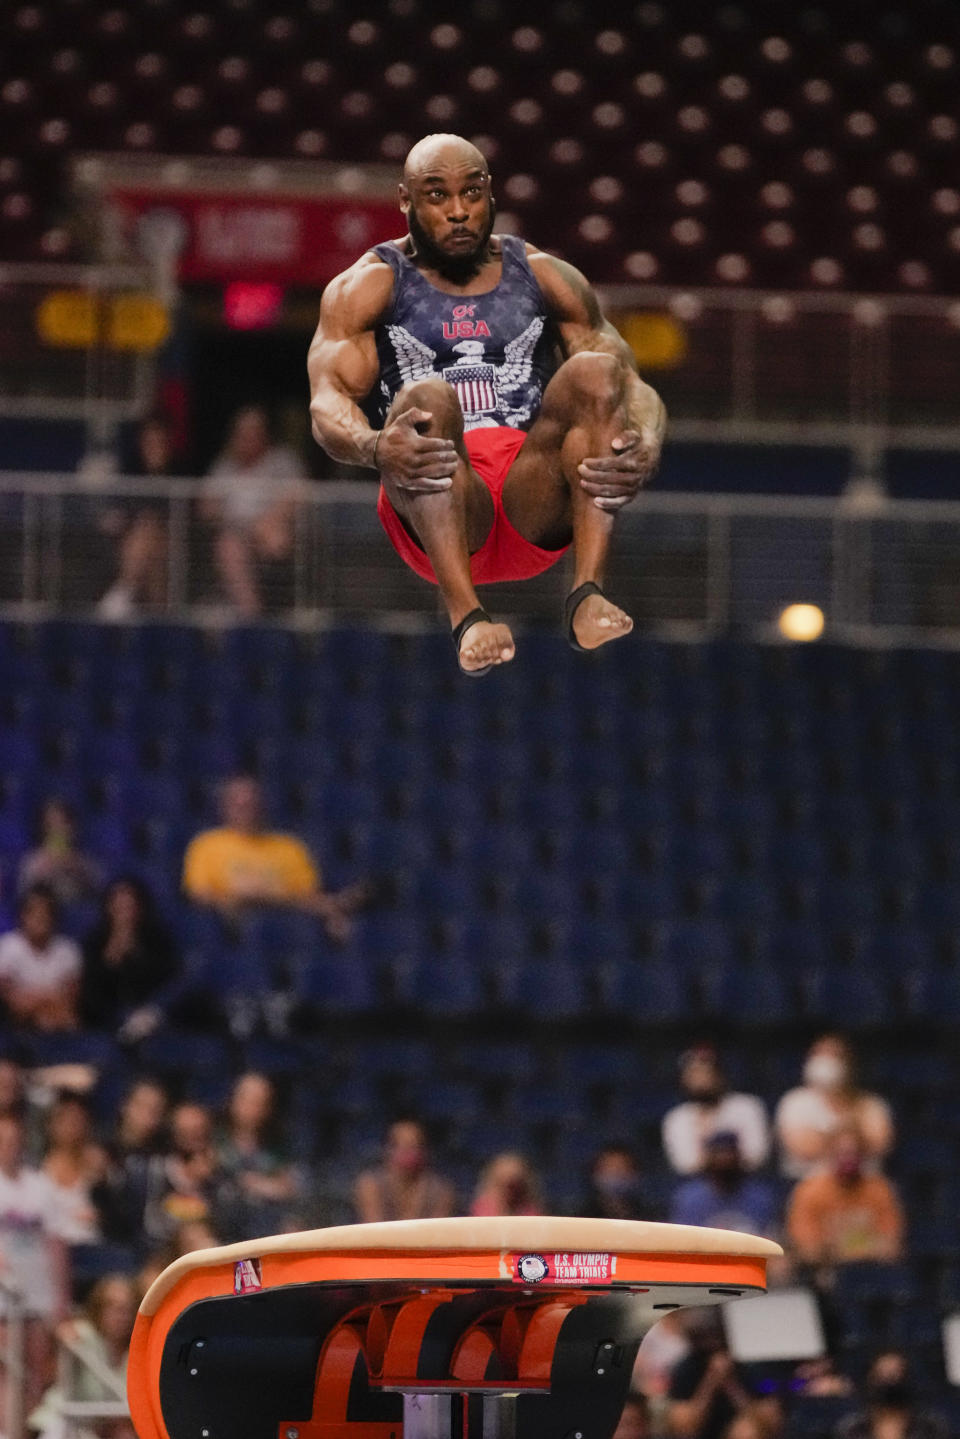 Donnell Whittenburg competes on the vault during the men's U.S. Olympic Gymnastics Trials Saturday, June 26, 2021, in St. Louis. (AP Photo/Jeff Roberson)